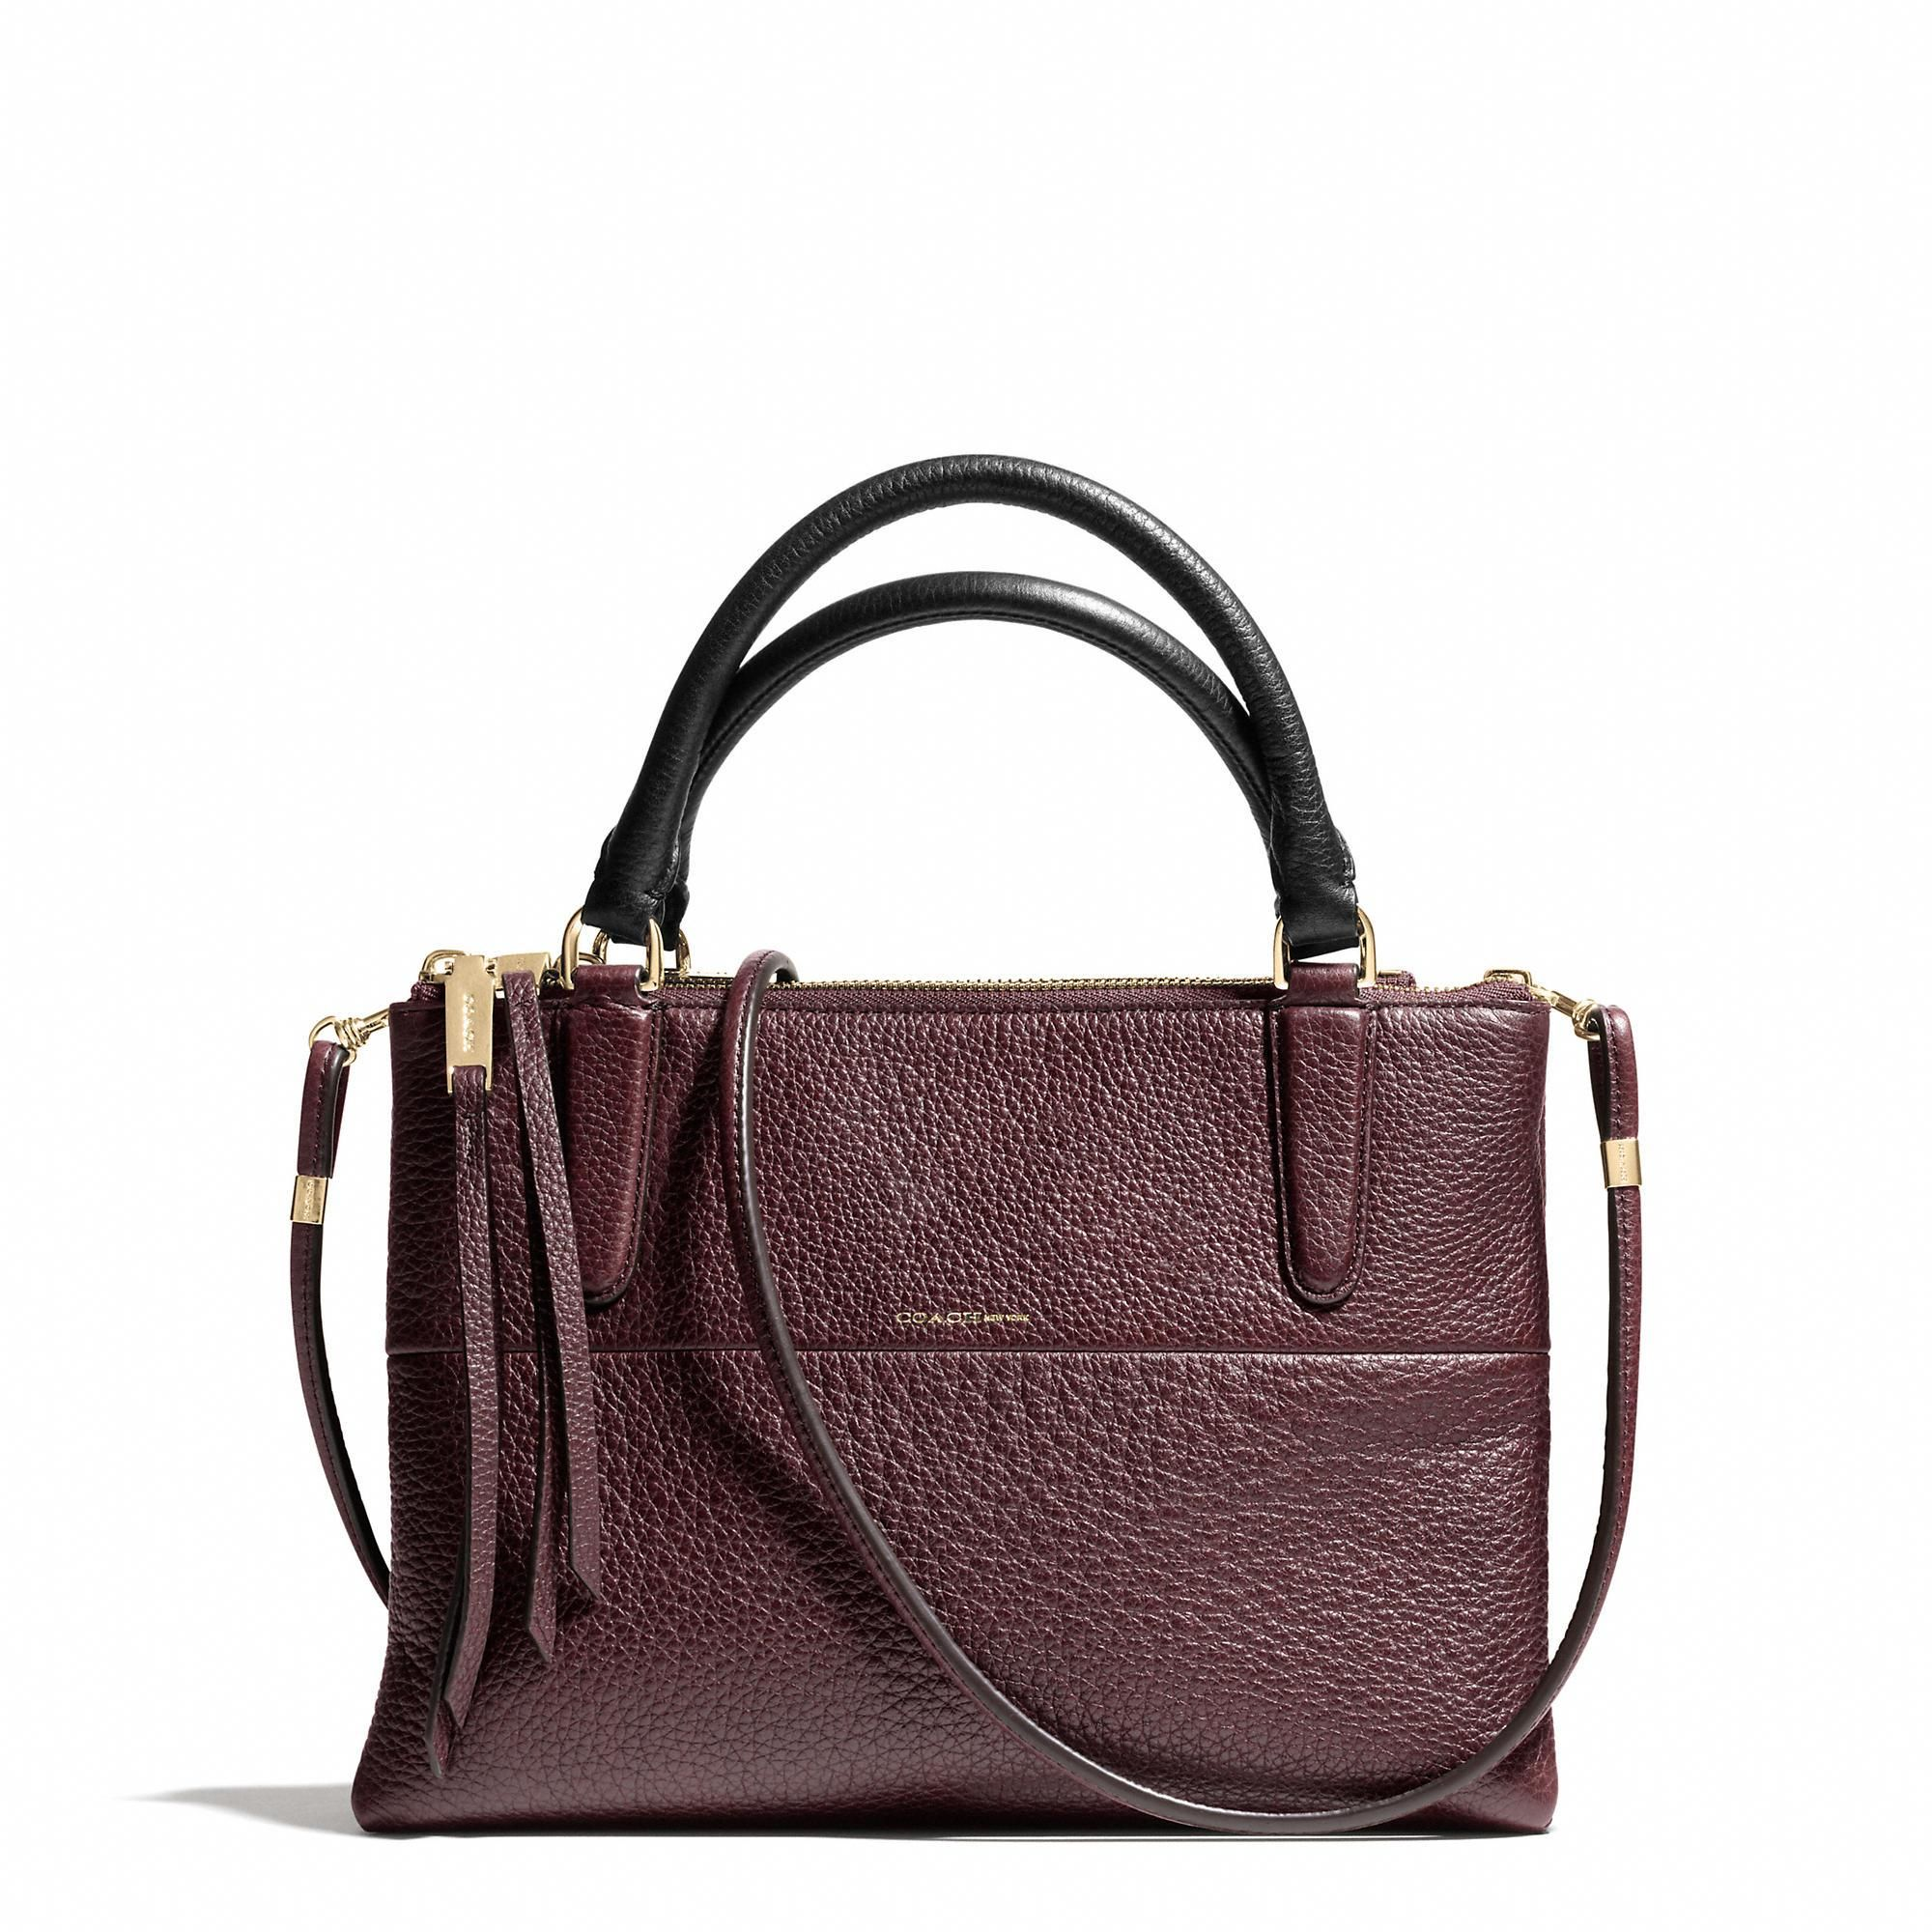 65d1f522124a ... canada the coach mini borough bag in pebbled leather 56b3d bc256